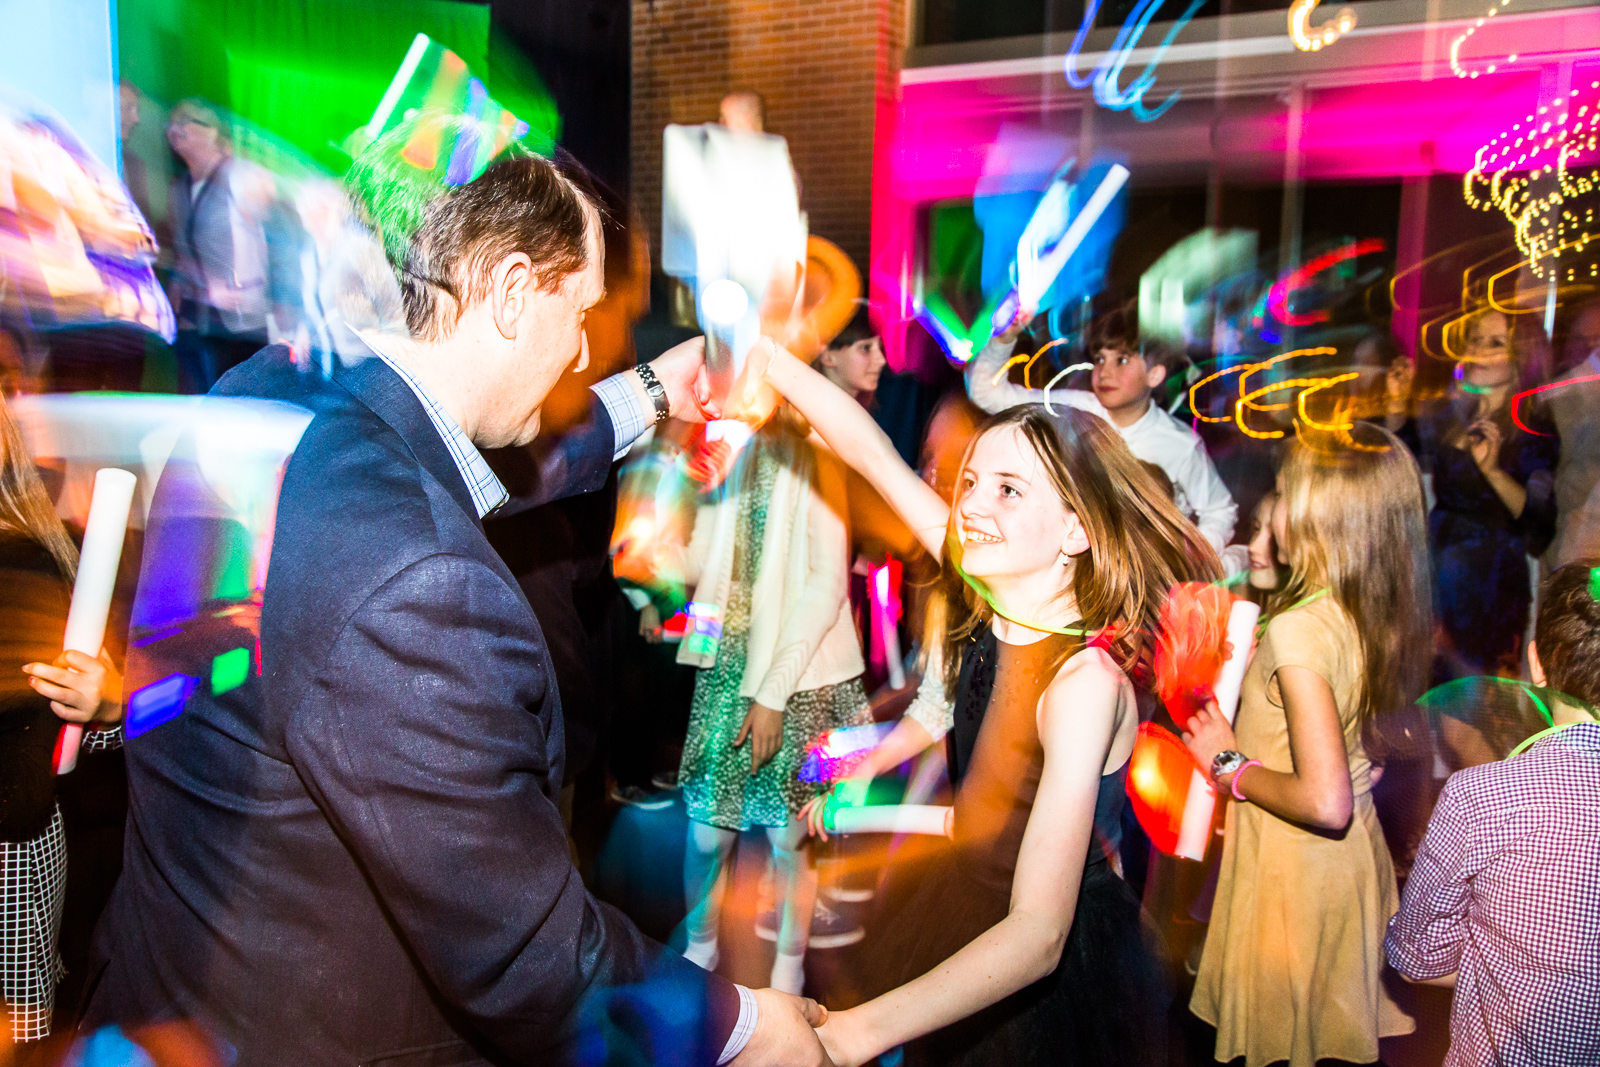 _C8A4063 - Richard Mallory Allnutt photo - Nate Belman's bar mitzvah party at AMP - North Bethesda, MD - March 05, 2016.jpg